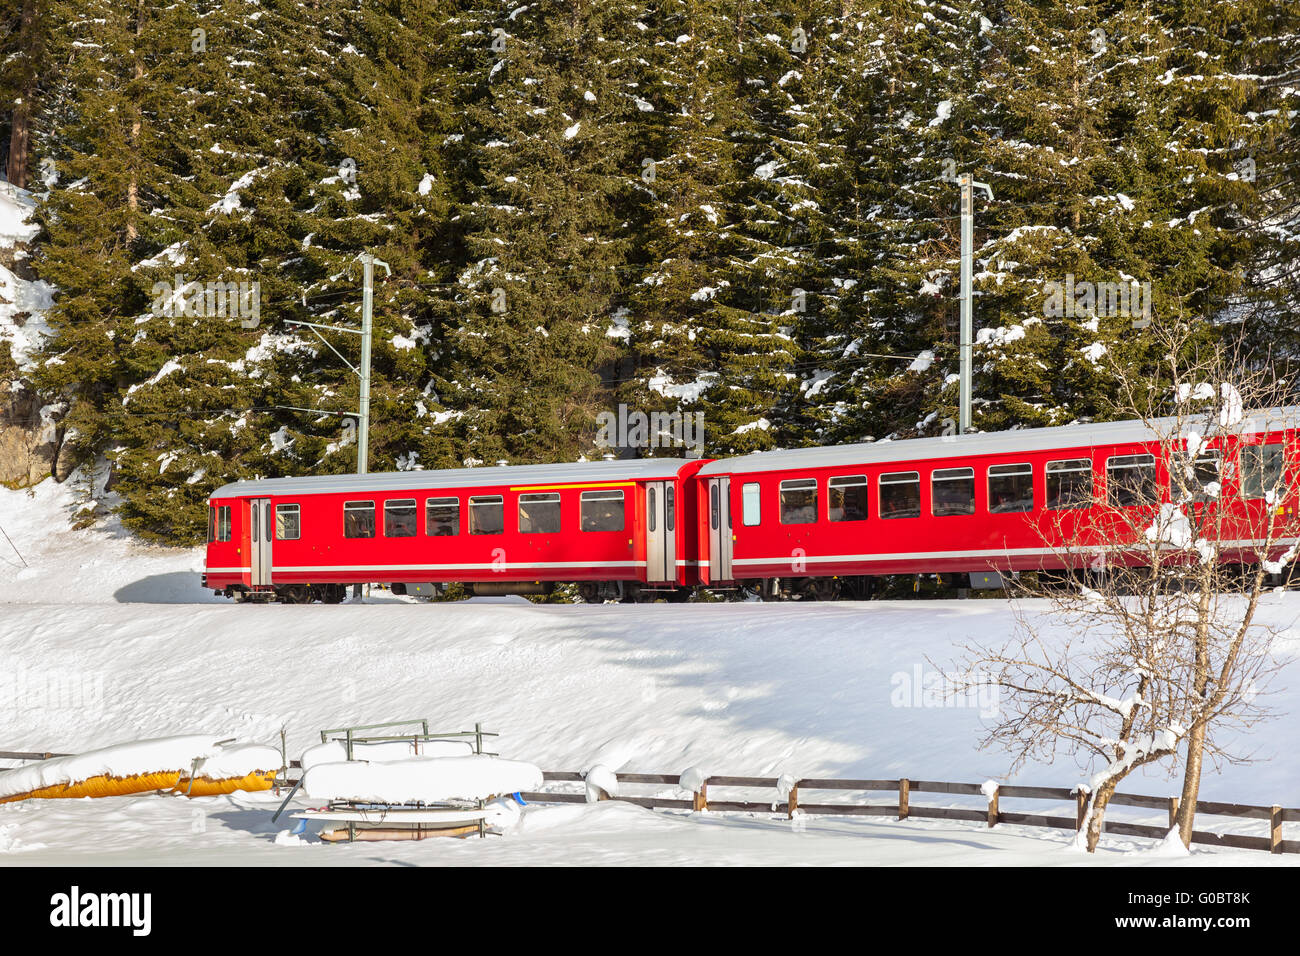 Famous sightseeing train of Rhaetian Railway running in snow, the Glacier Express in winter of Switzerland - Stock Image